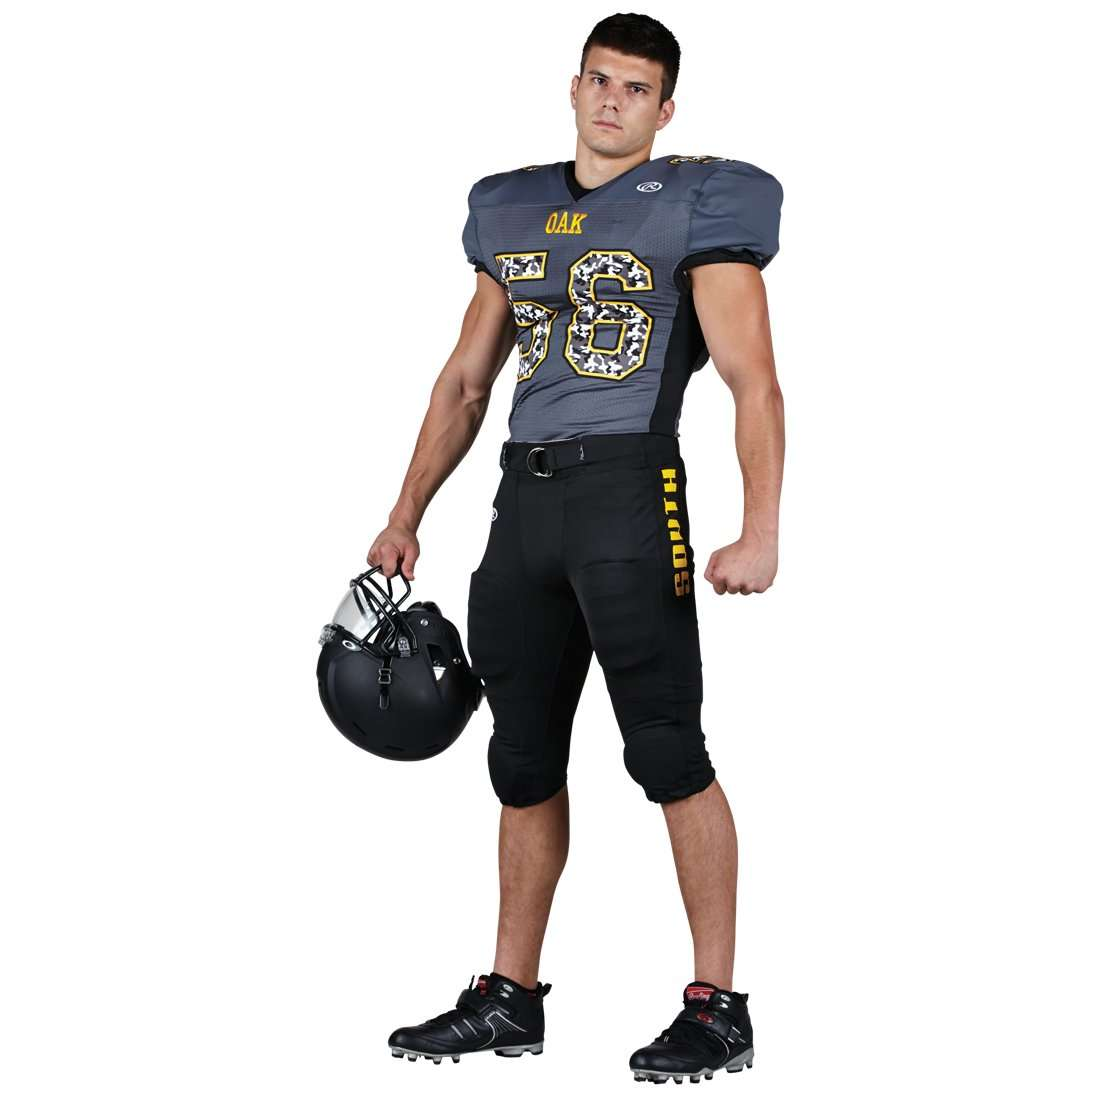 76048c2b5 Rawlings Adult Tackle Twill Football Jersey - Oak – League Outfitters